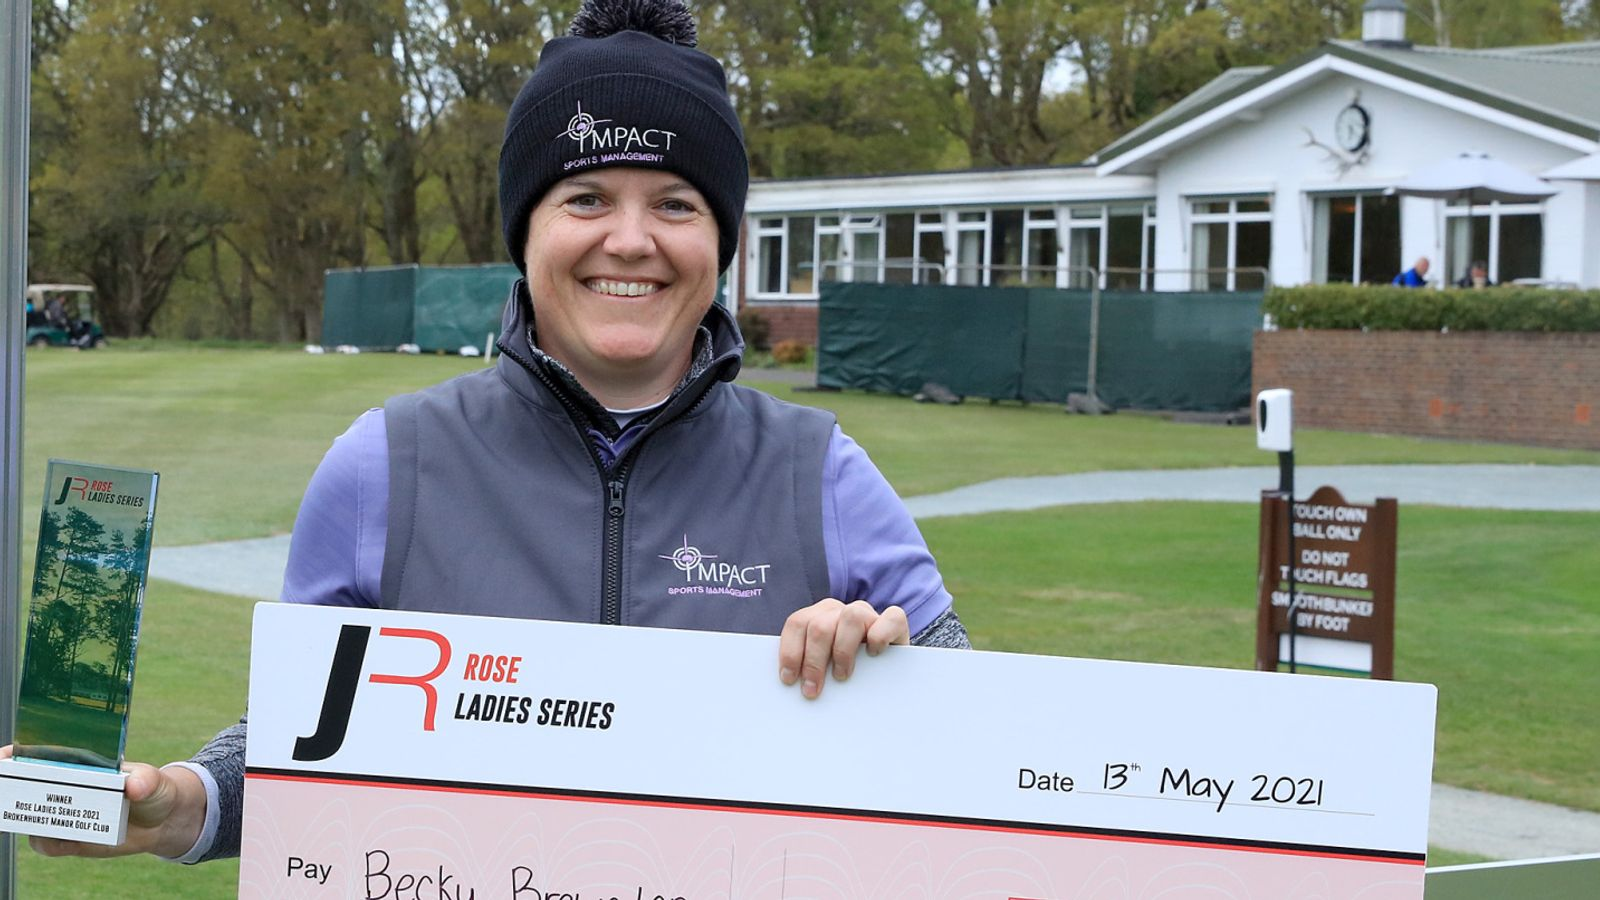 Rose Ladies Series: Becky Brewerton snatches play-off victory at Brokenhurst Manor event